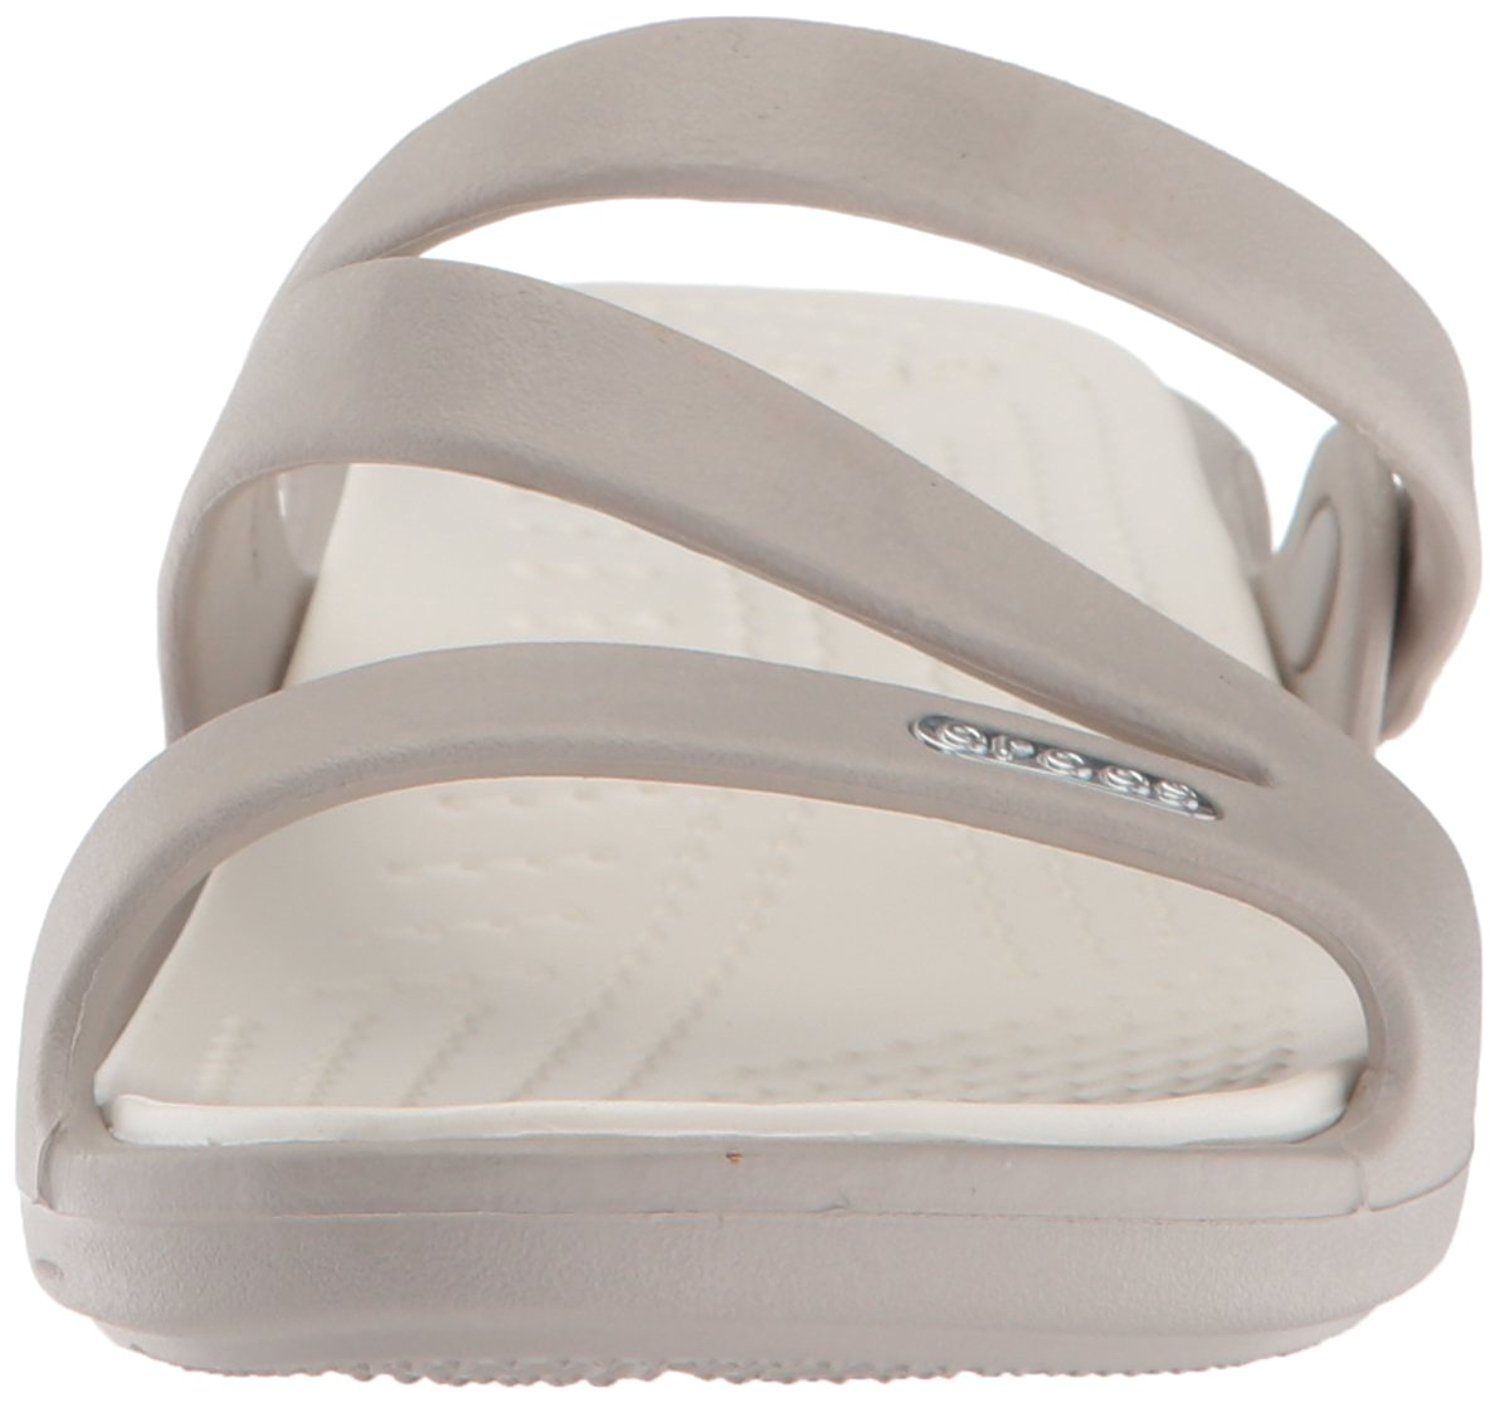 5d4d10ba5e3dd crocs Women s Patricia Sandal     Details can be found by clicking on the  image